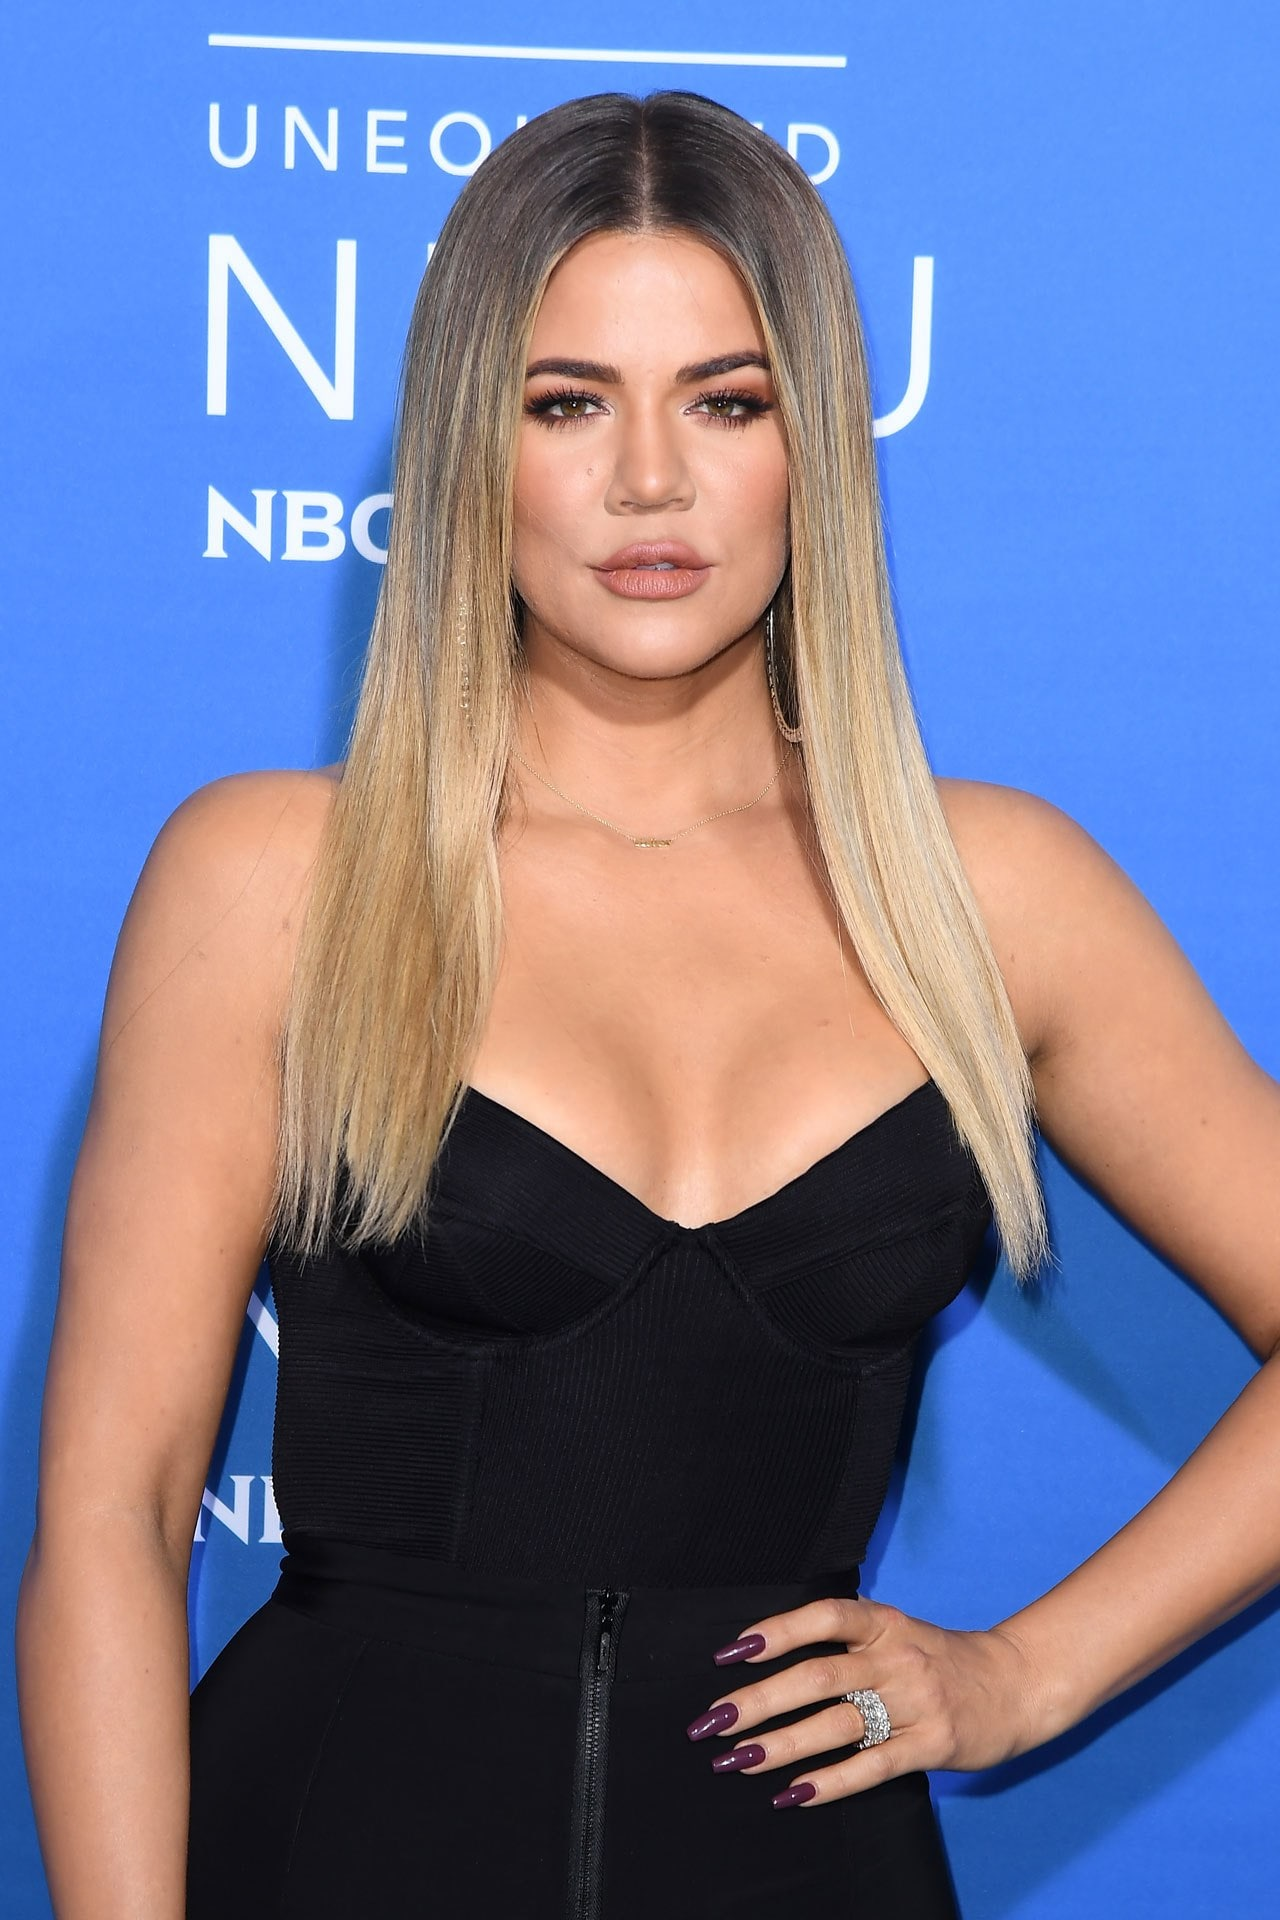 Khloé Kardashian gives fans pregnancy sex advice